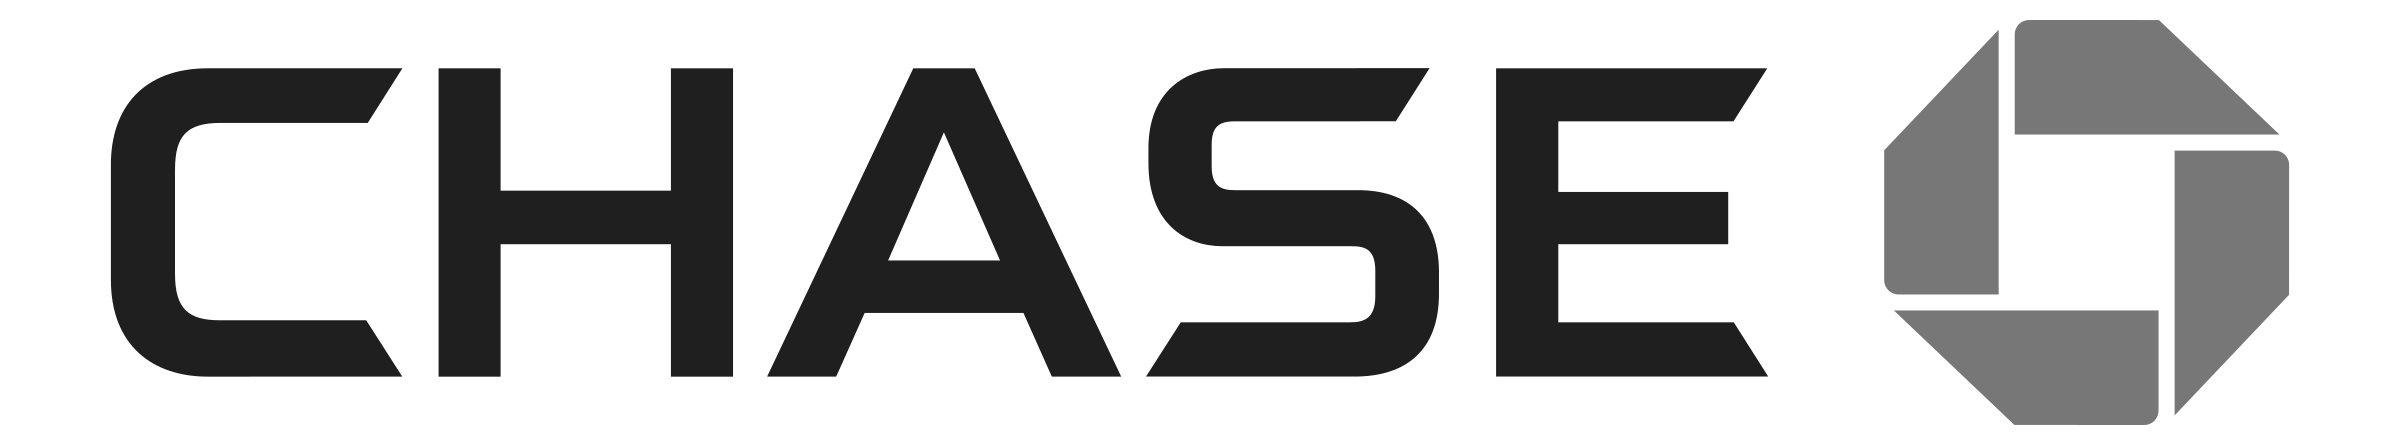 chase-logo-transparent.png